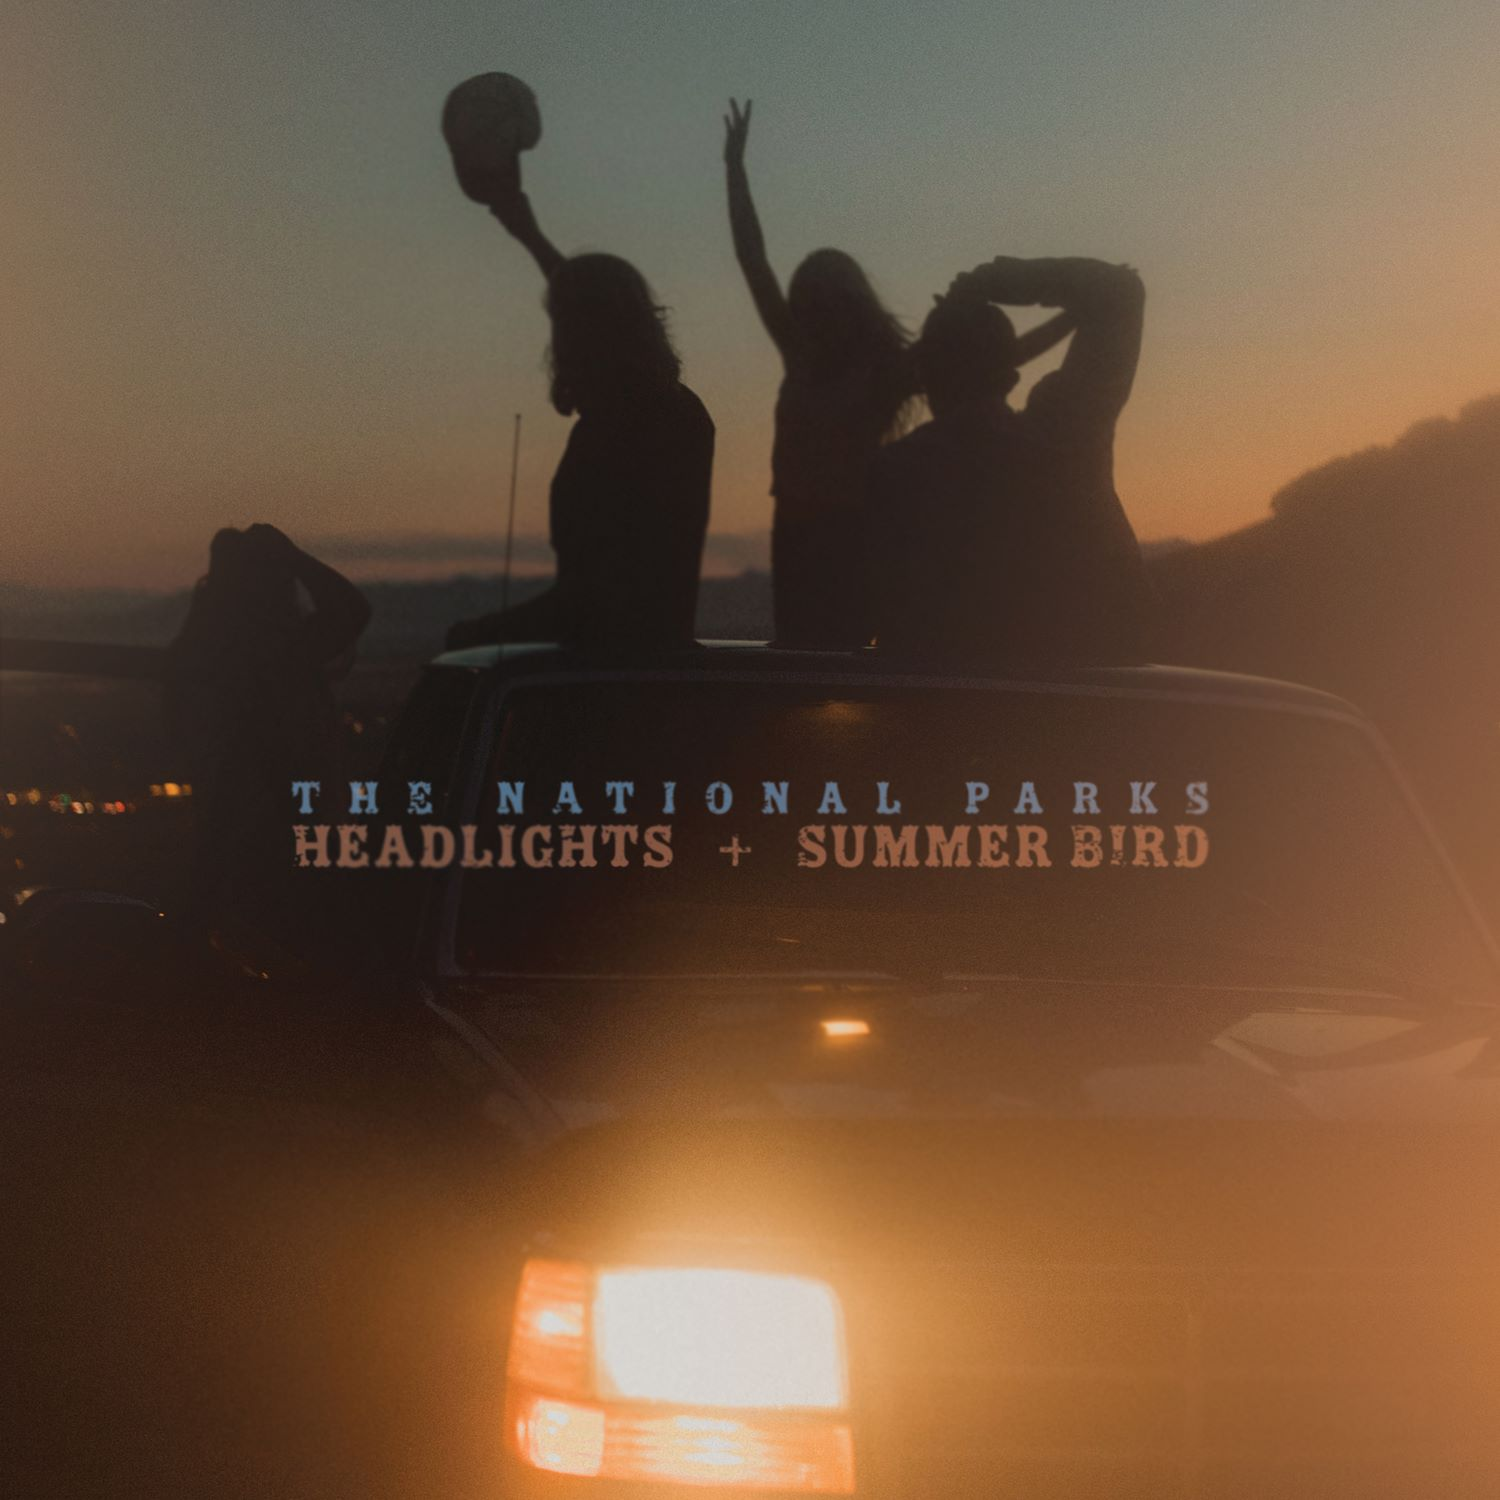 The National Parks for New Music Friday | Country